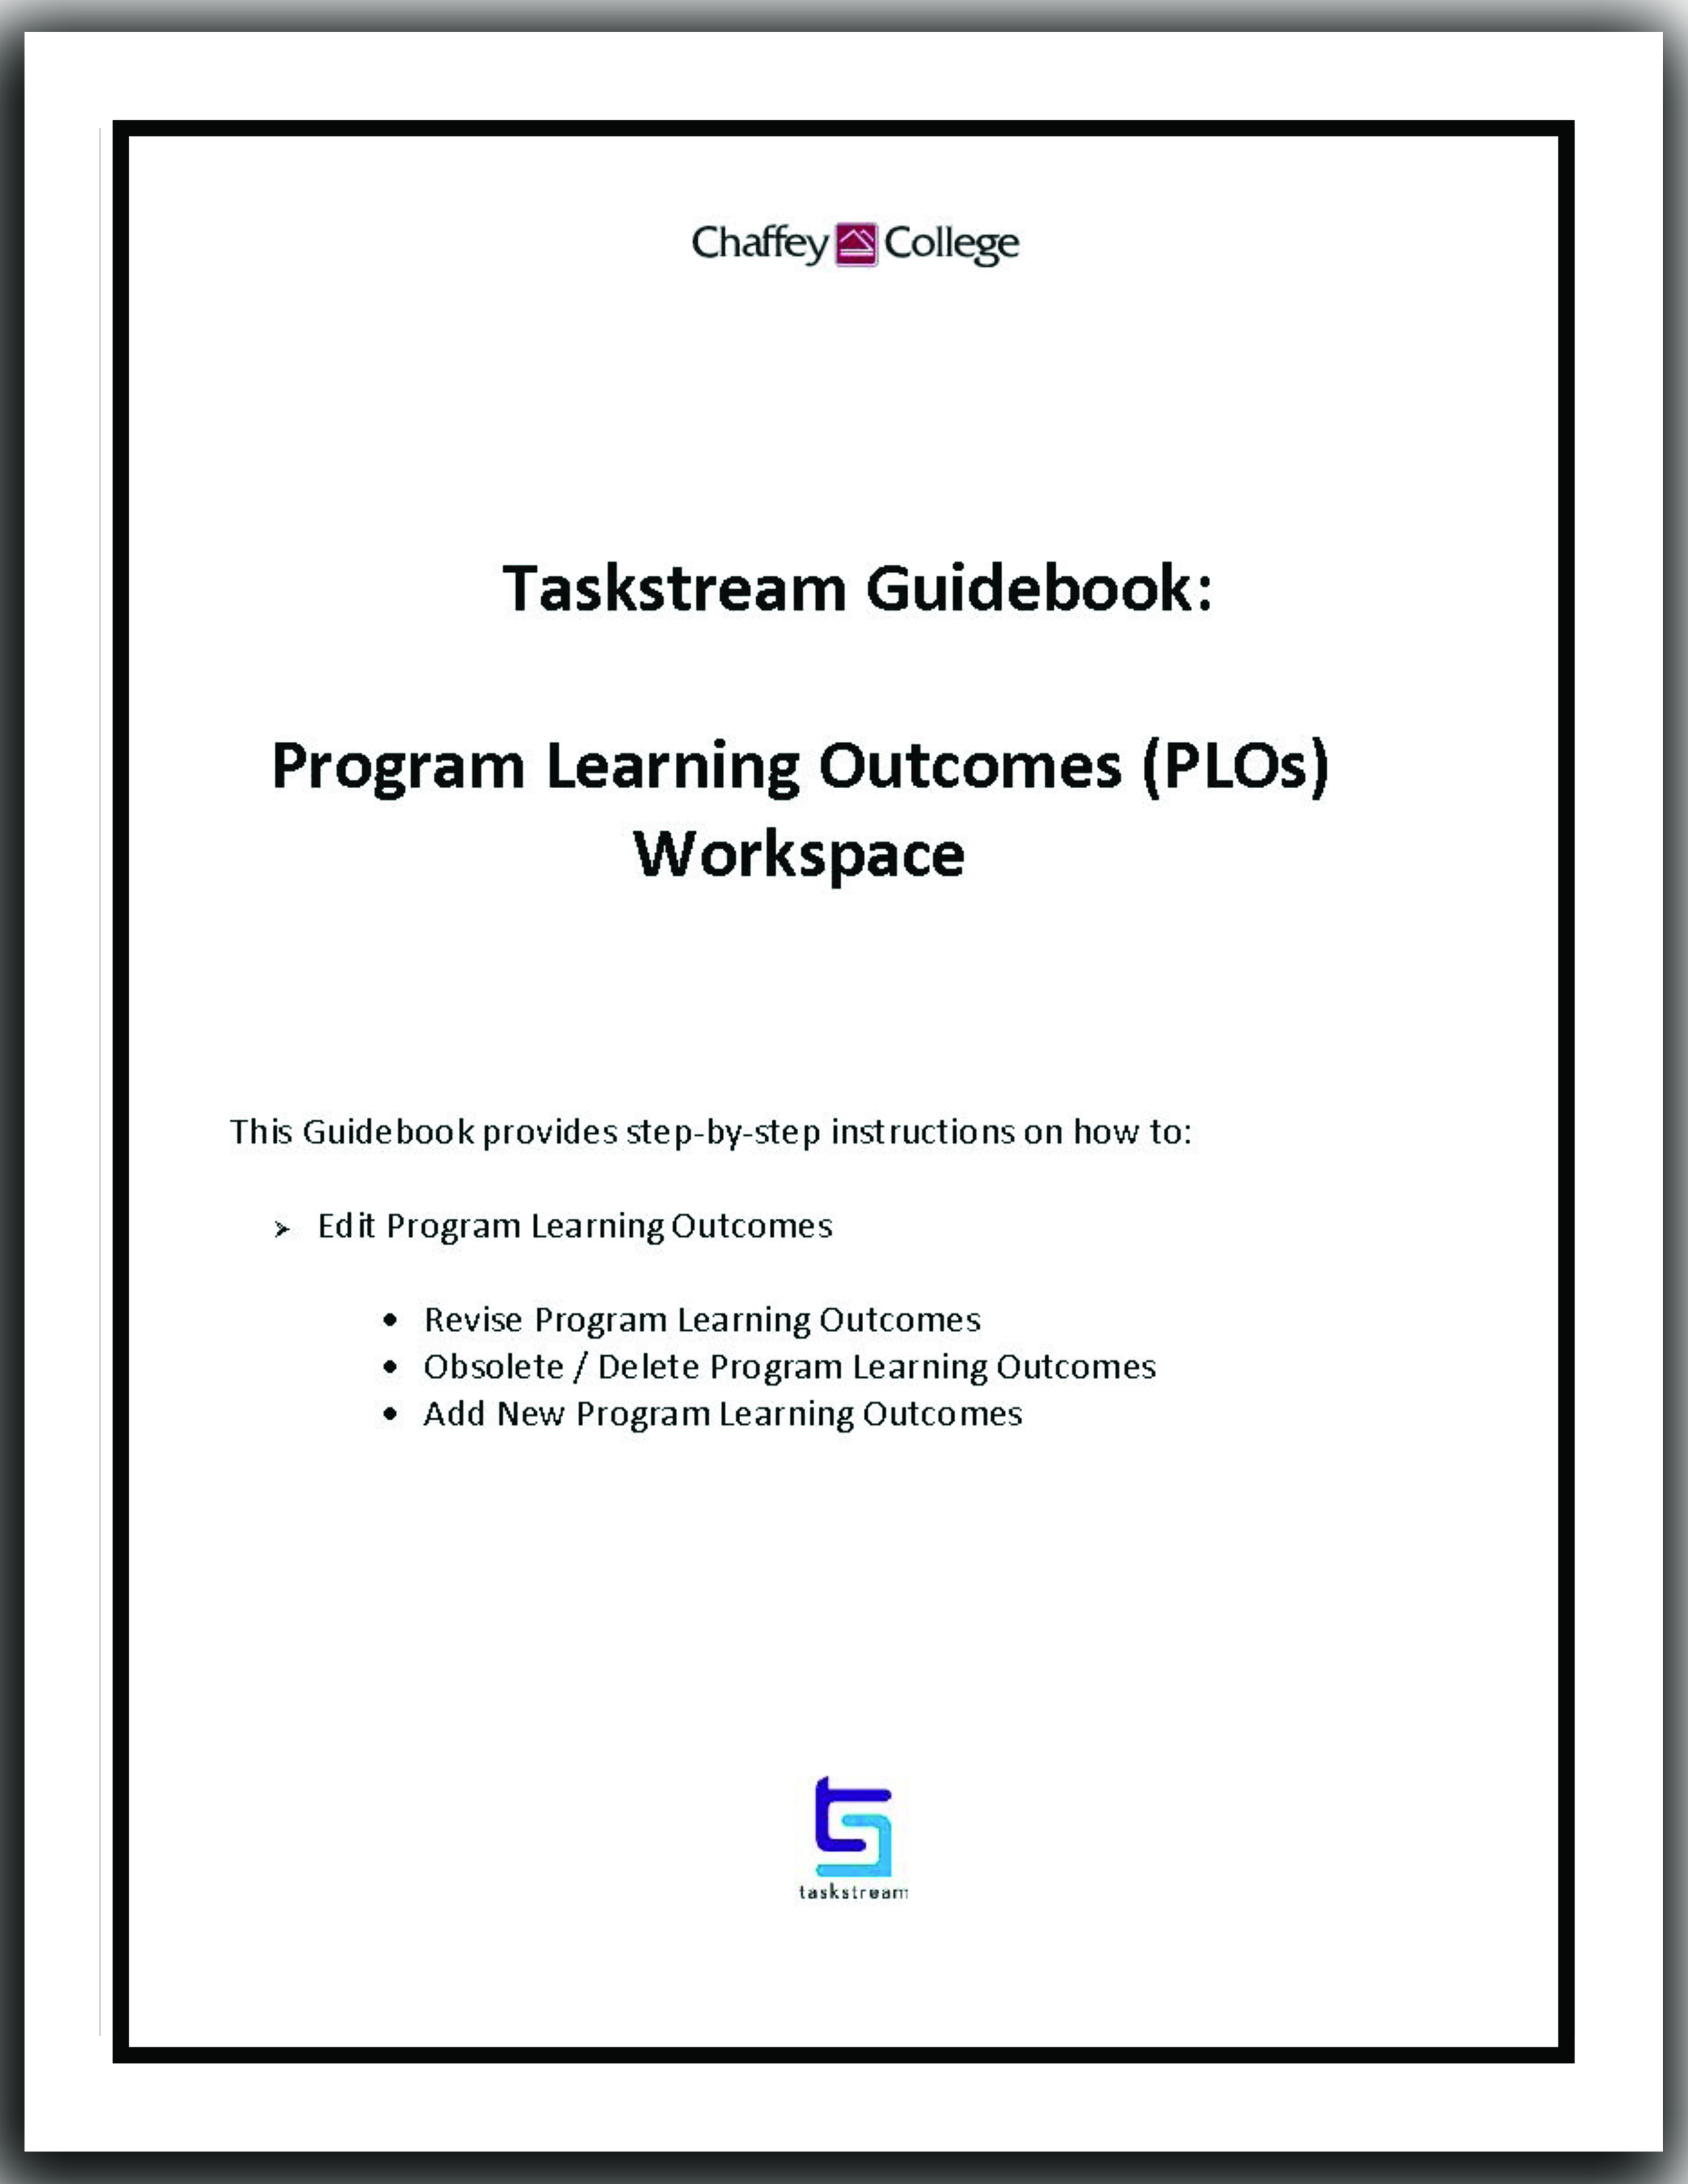 Edit Program Learning Outcomes